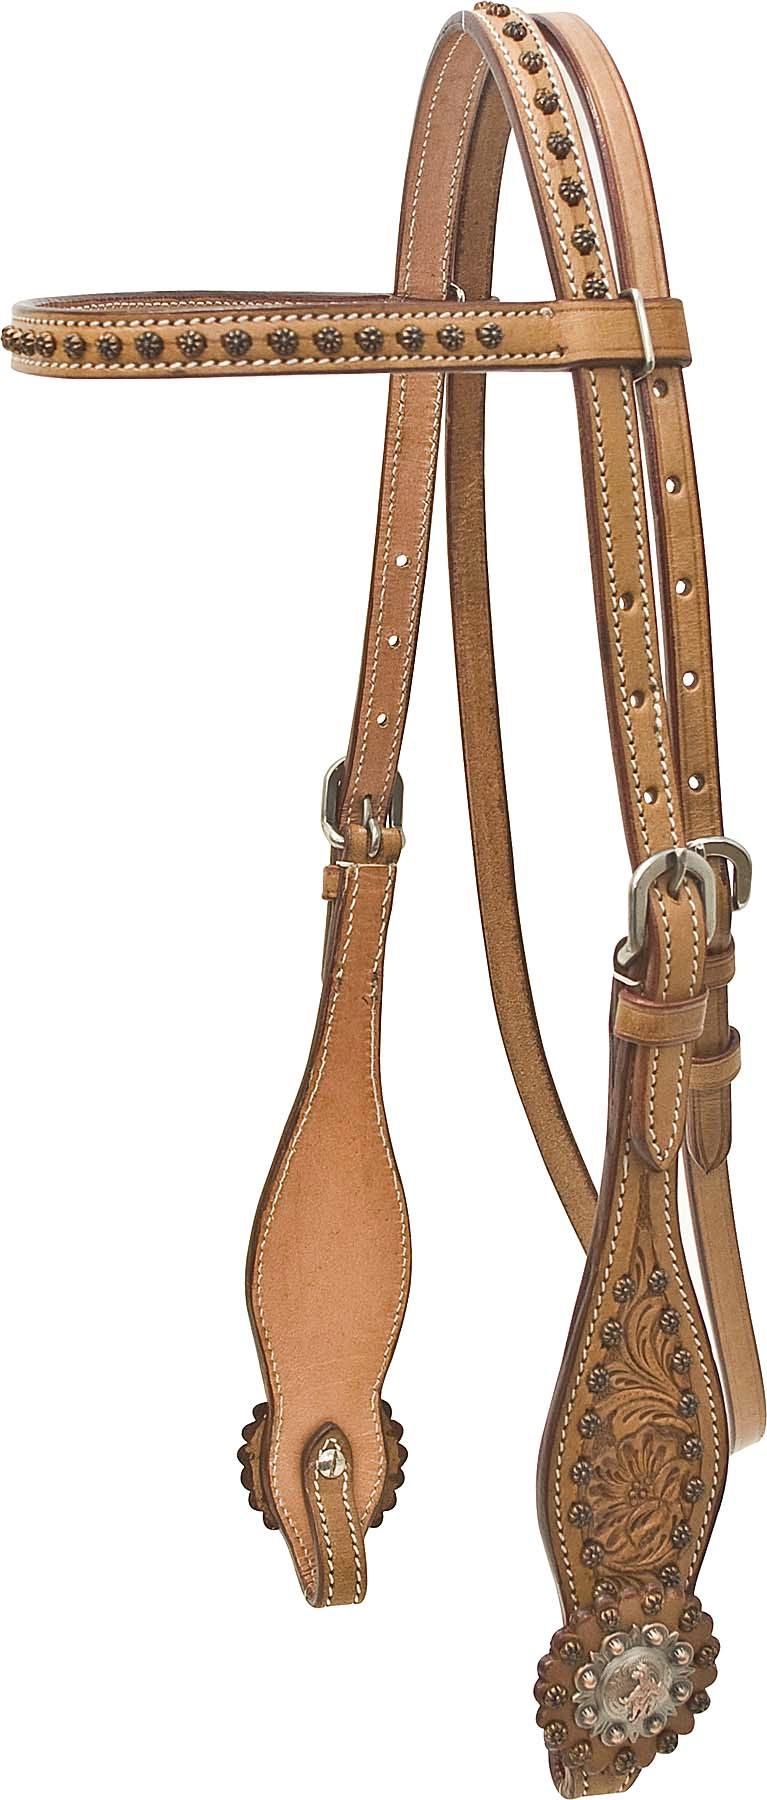 Cowboy Pro Floral Tooled Brow Headstall With Barrel Racer